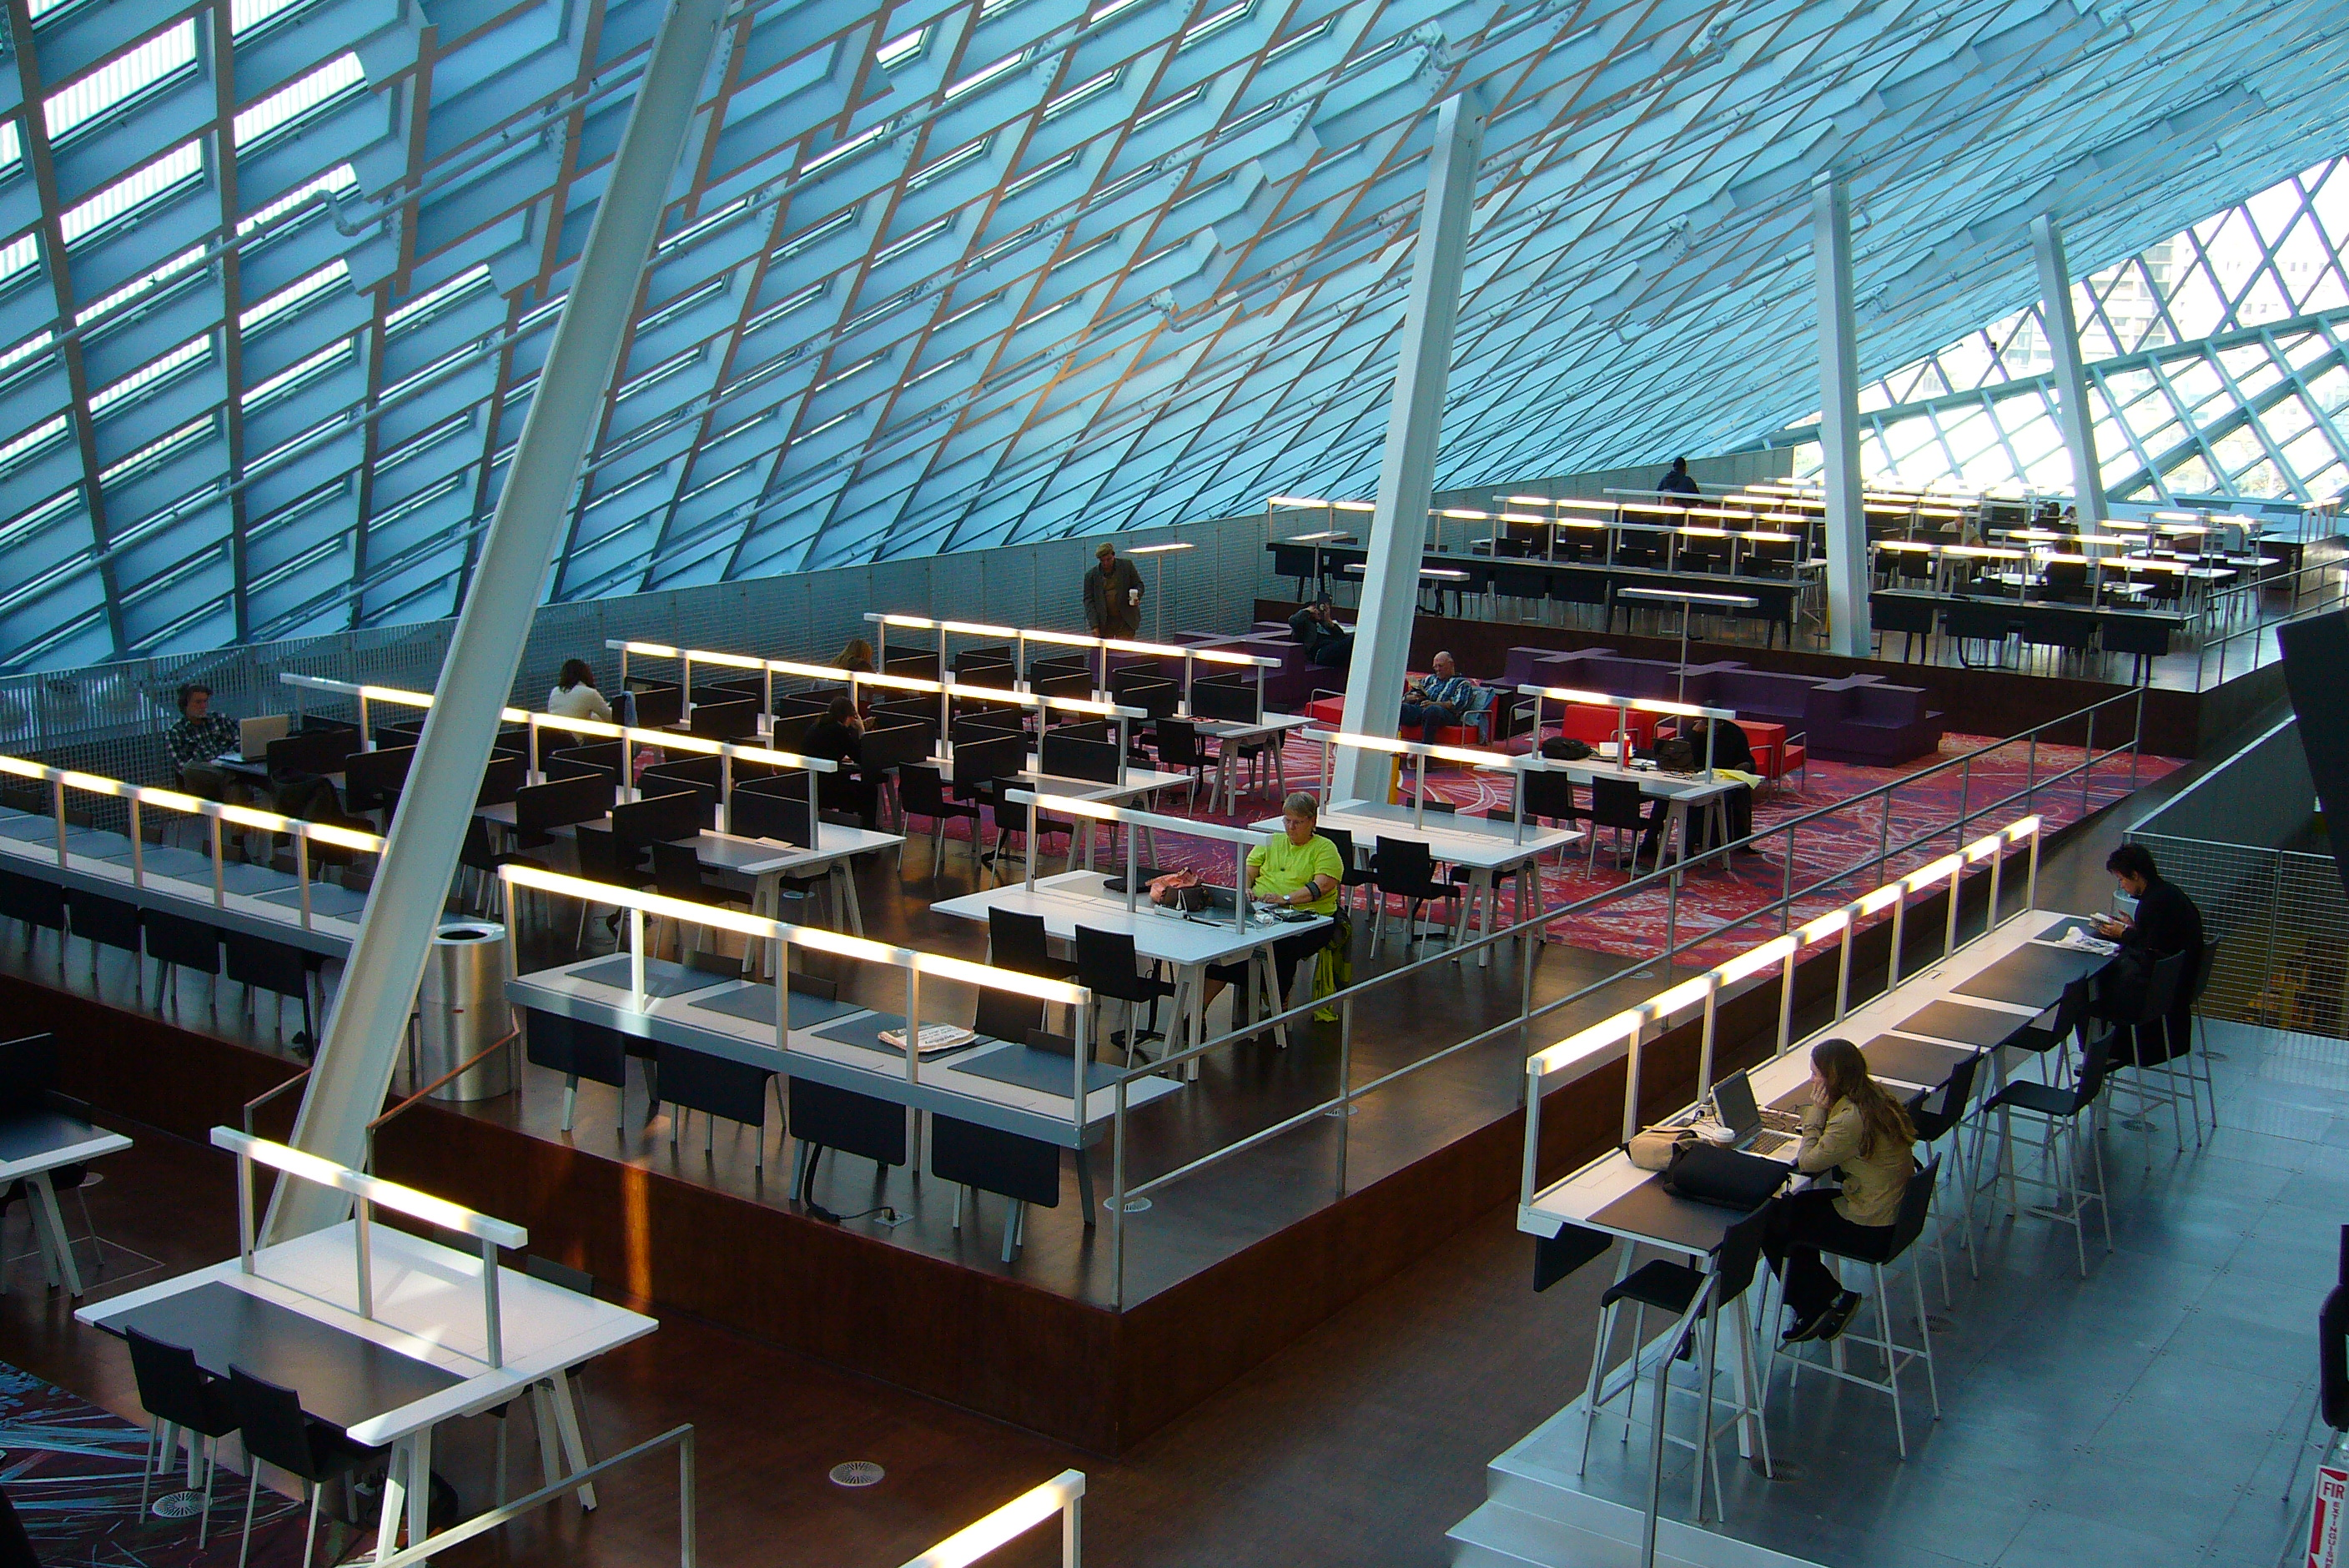 Seattle Public Library Interior